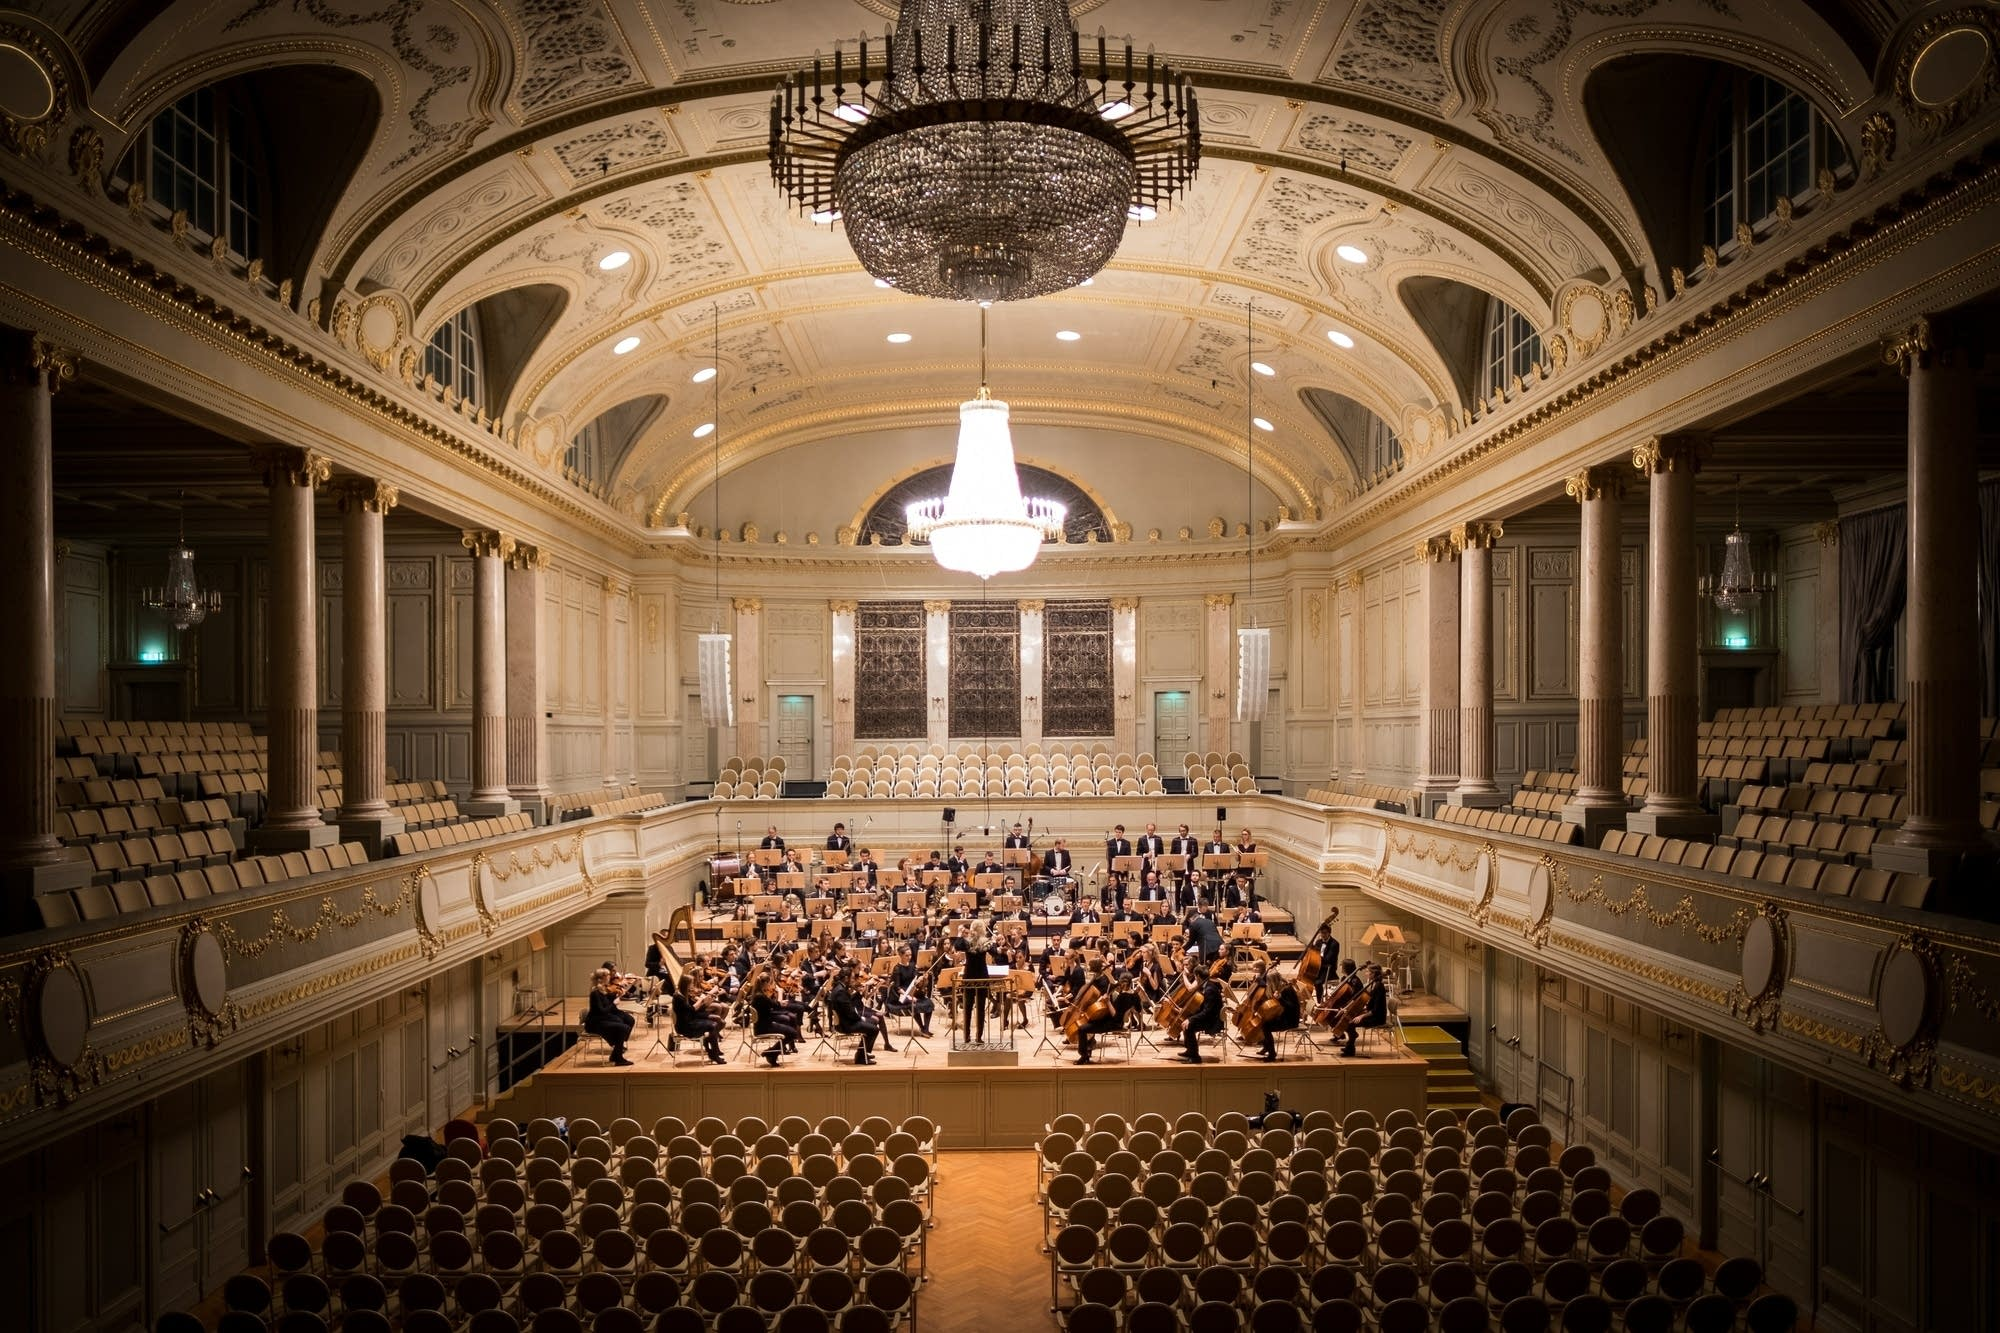 An orchestra hall with empty seats